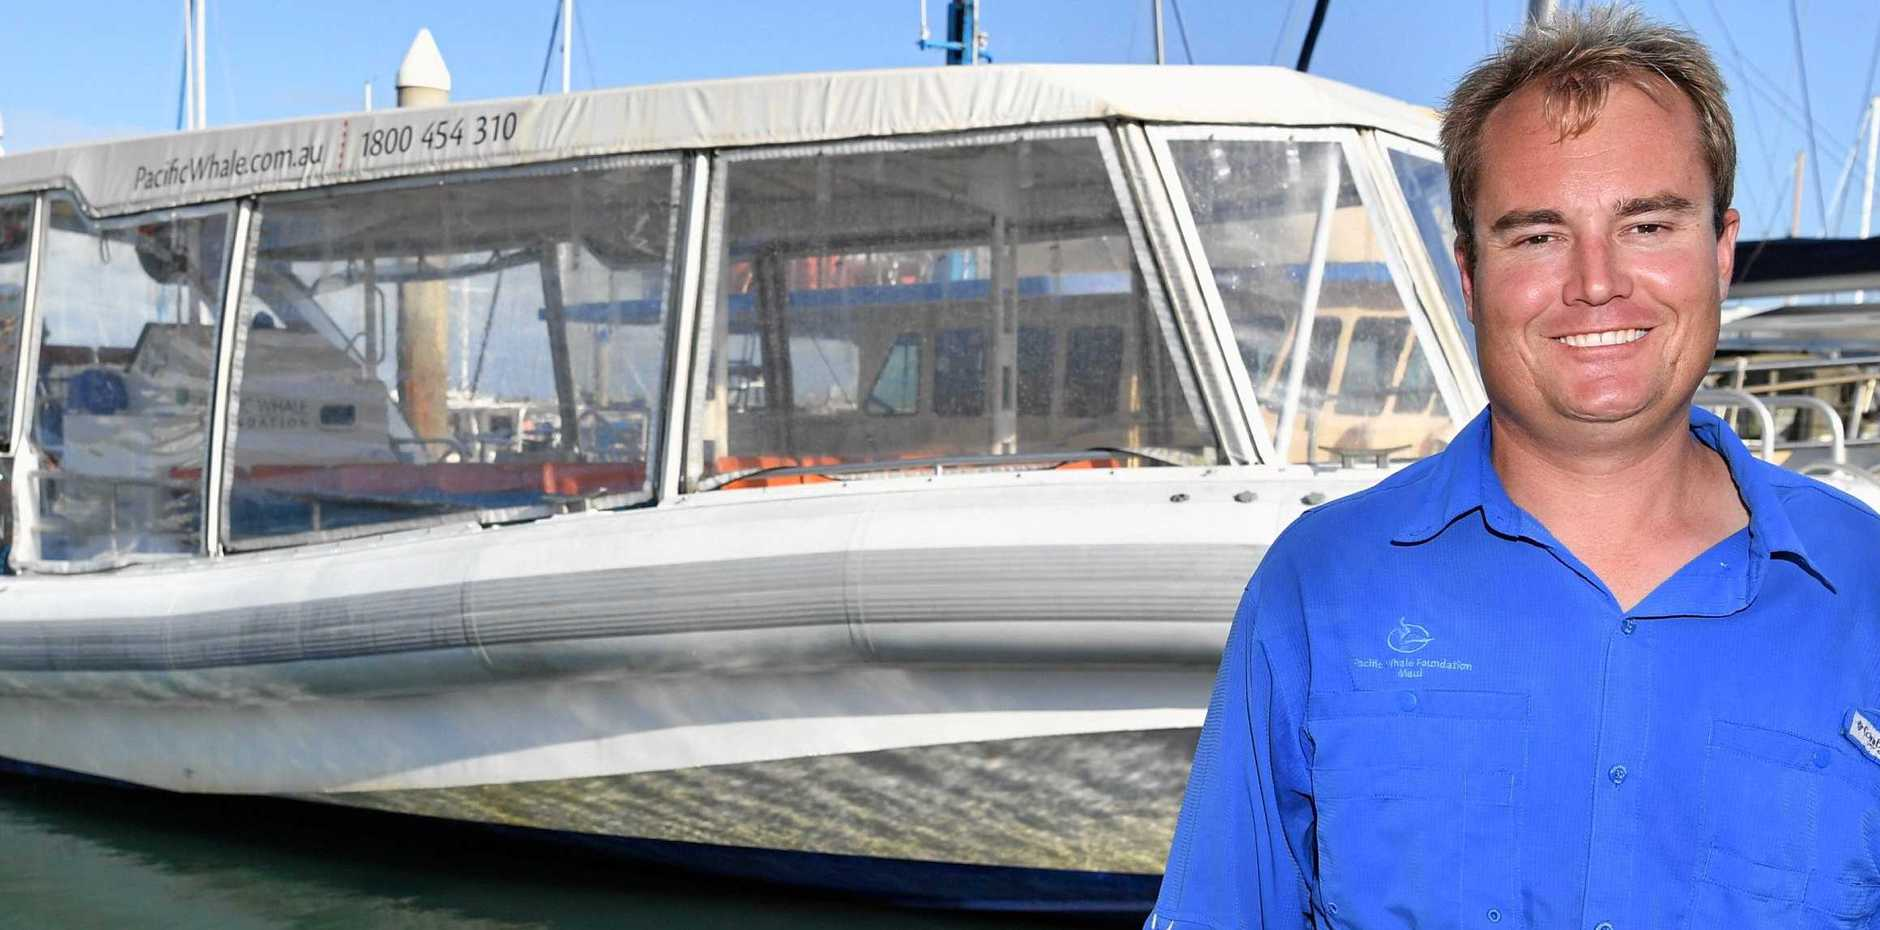 CHANGE OF HEART: Scott Whitcombe from Pacific Whale Foundation says he would not longer jump in the water to save an entangled whale.